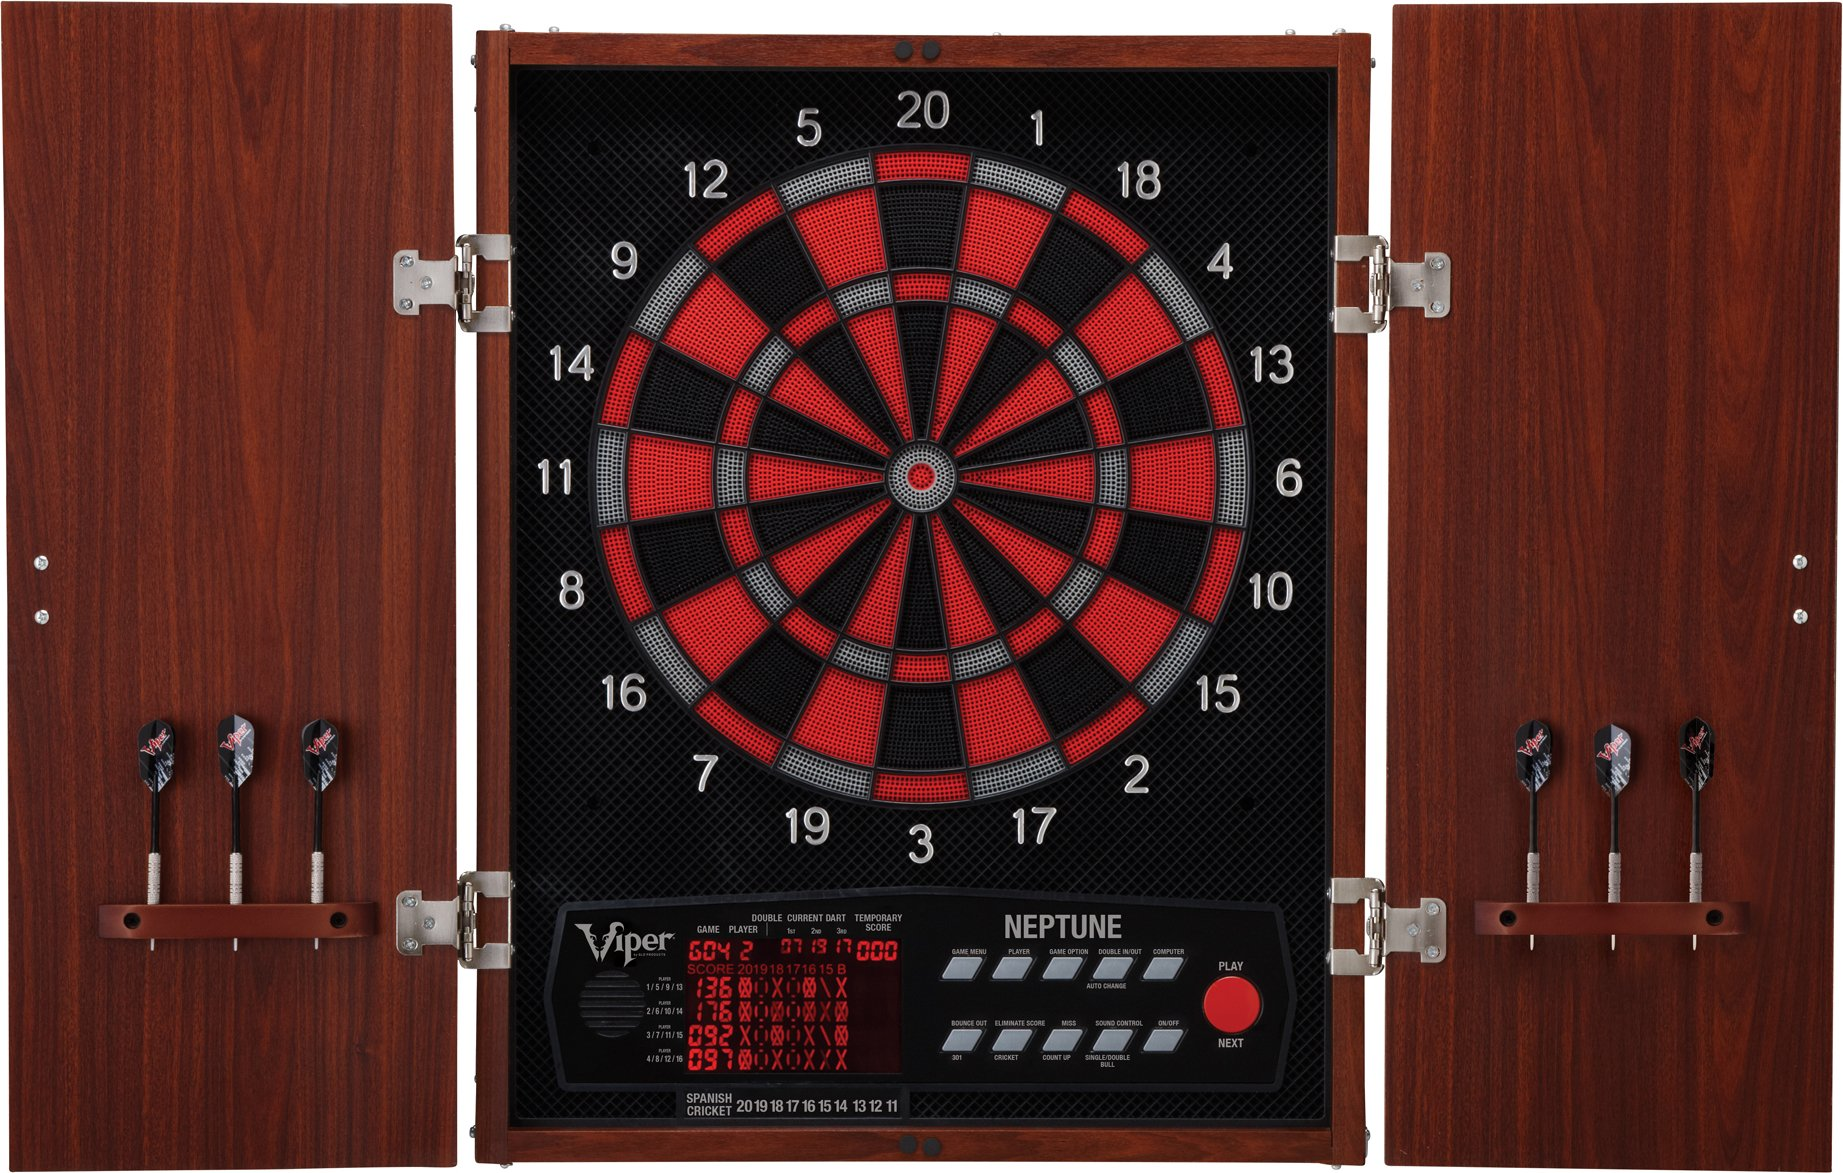 Viper Neptune Electronic Soft Tip Dartboard with Cabinet by Viper